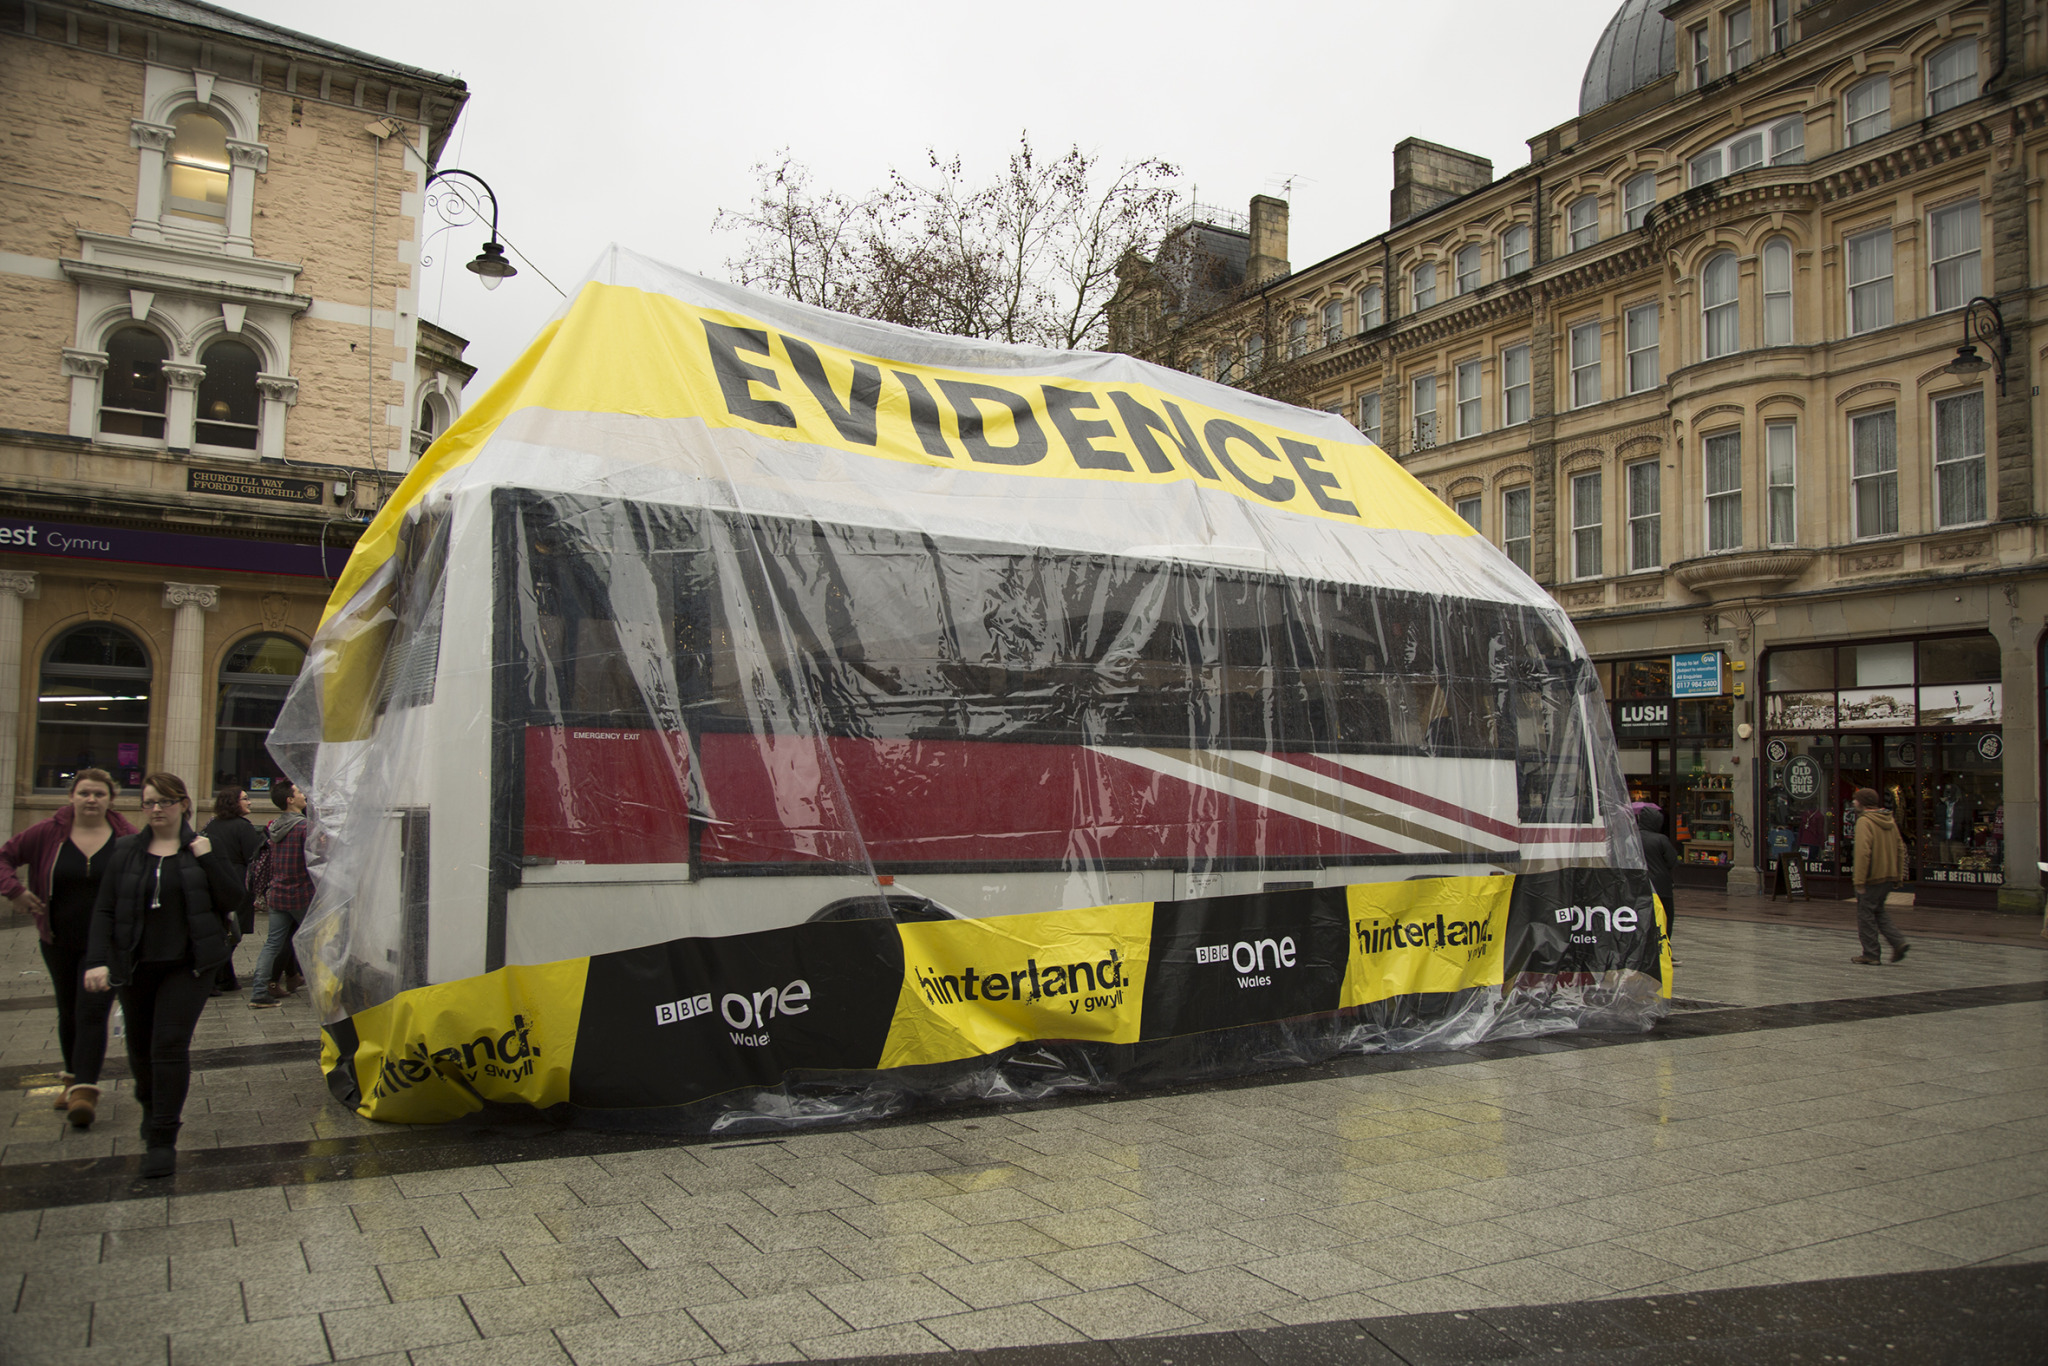 Bus in an Evidence Bag